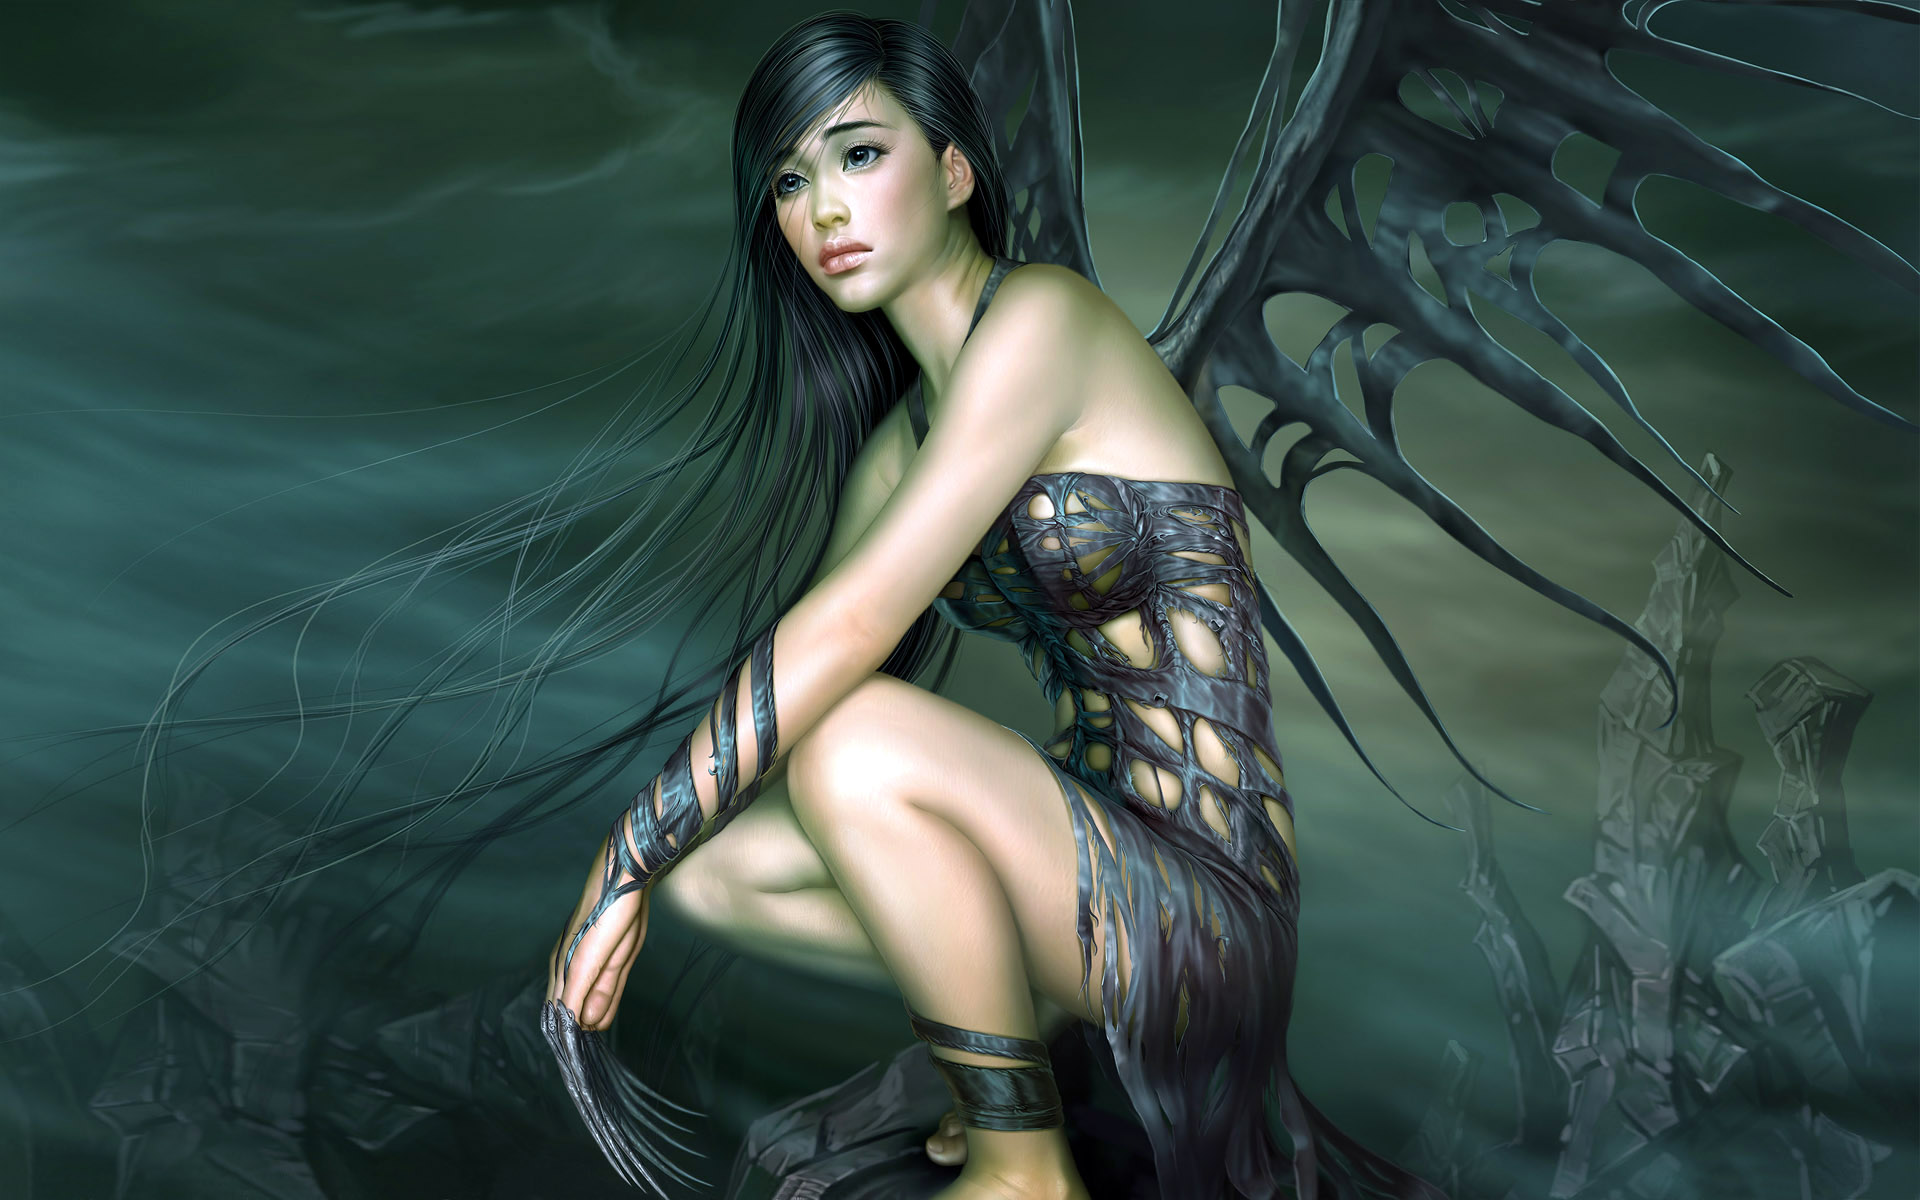 Fantasy - Angel  - Dark - Completely By Far My Favorite Awesome Artwork!!! - Woman - Demon - Fantasy - Black Wing - Deamon - Winged - Black Wallpaper